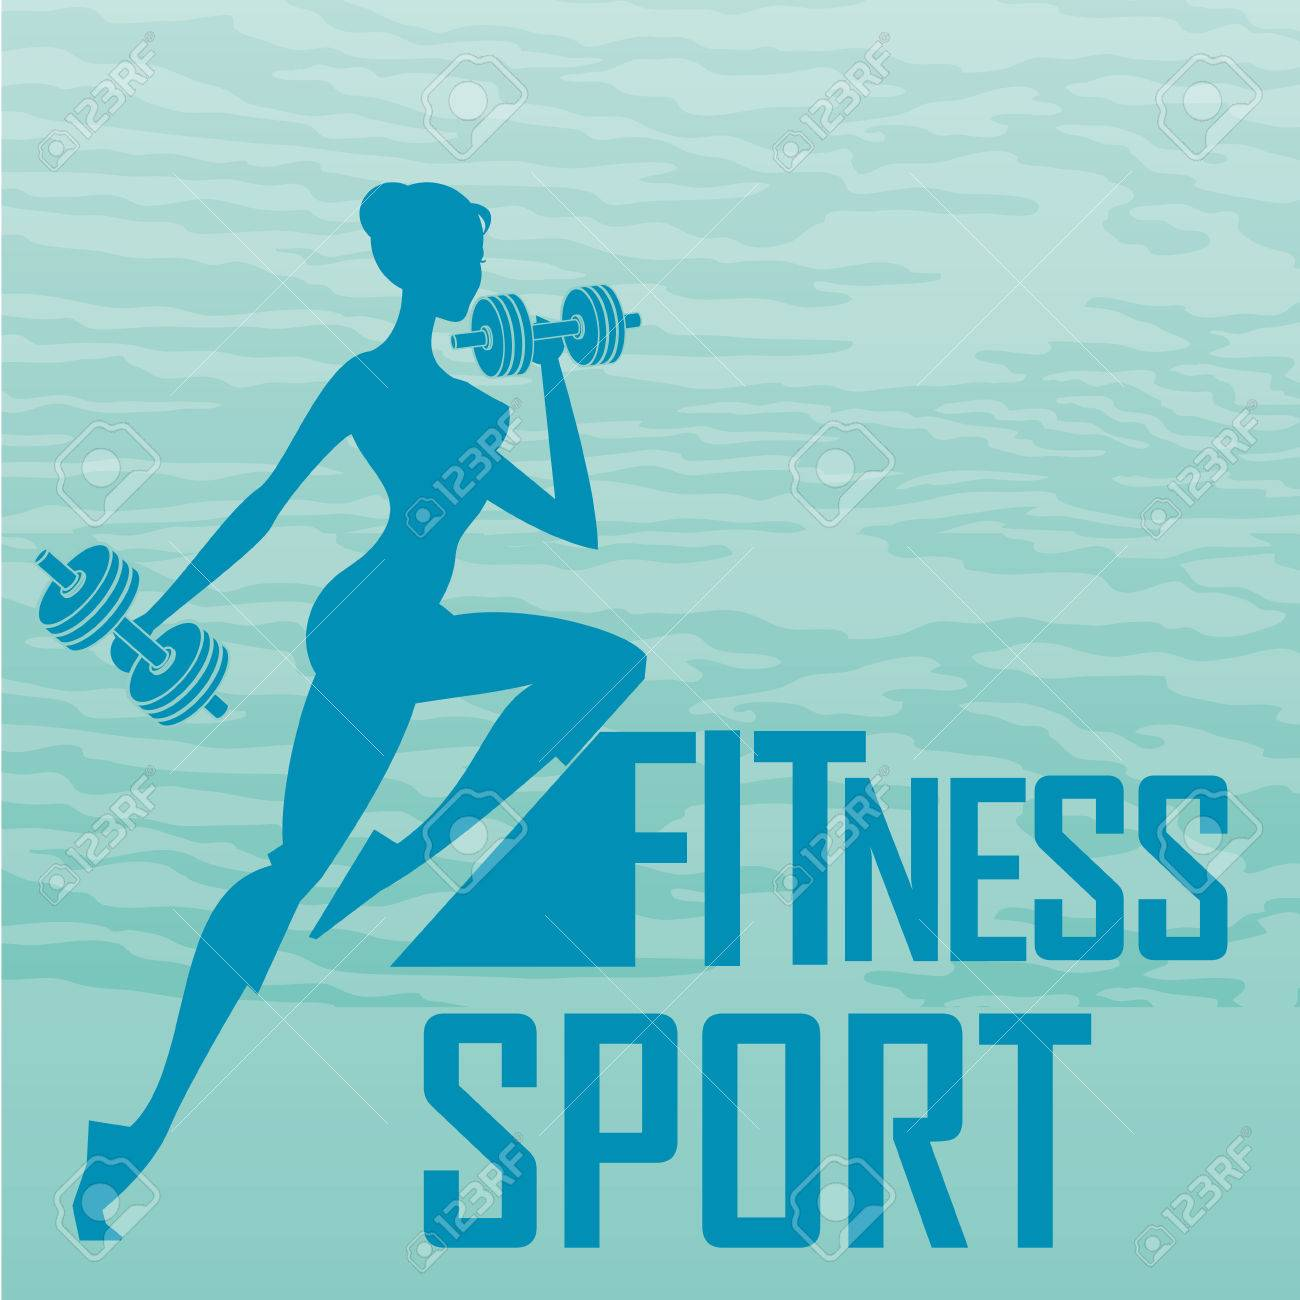 a blue silhouette of a woman lifting some weights - 25146236